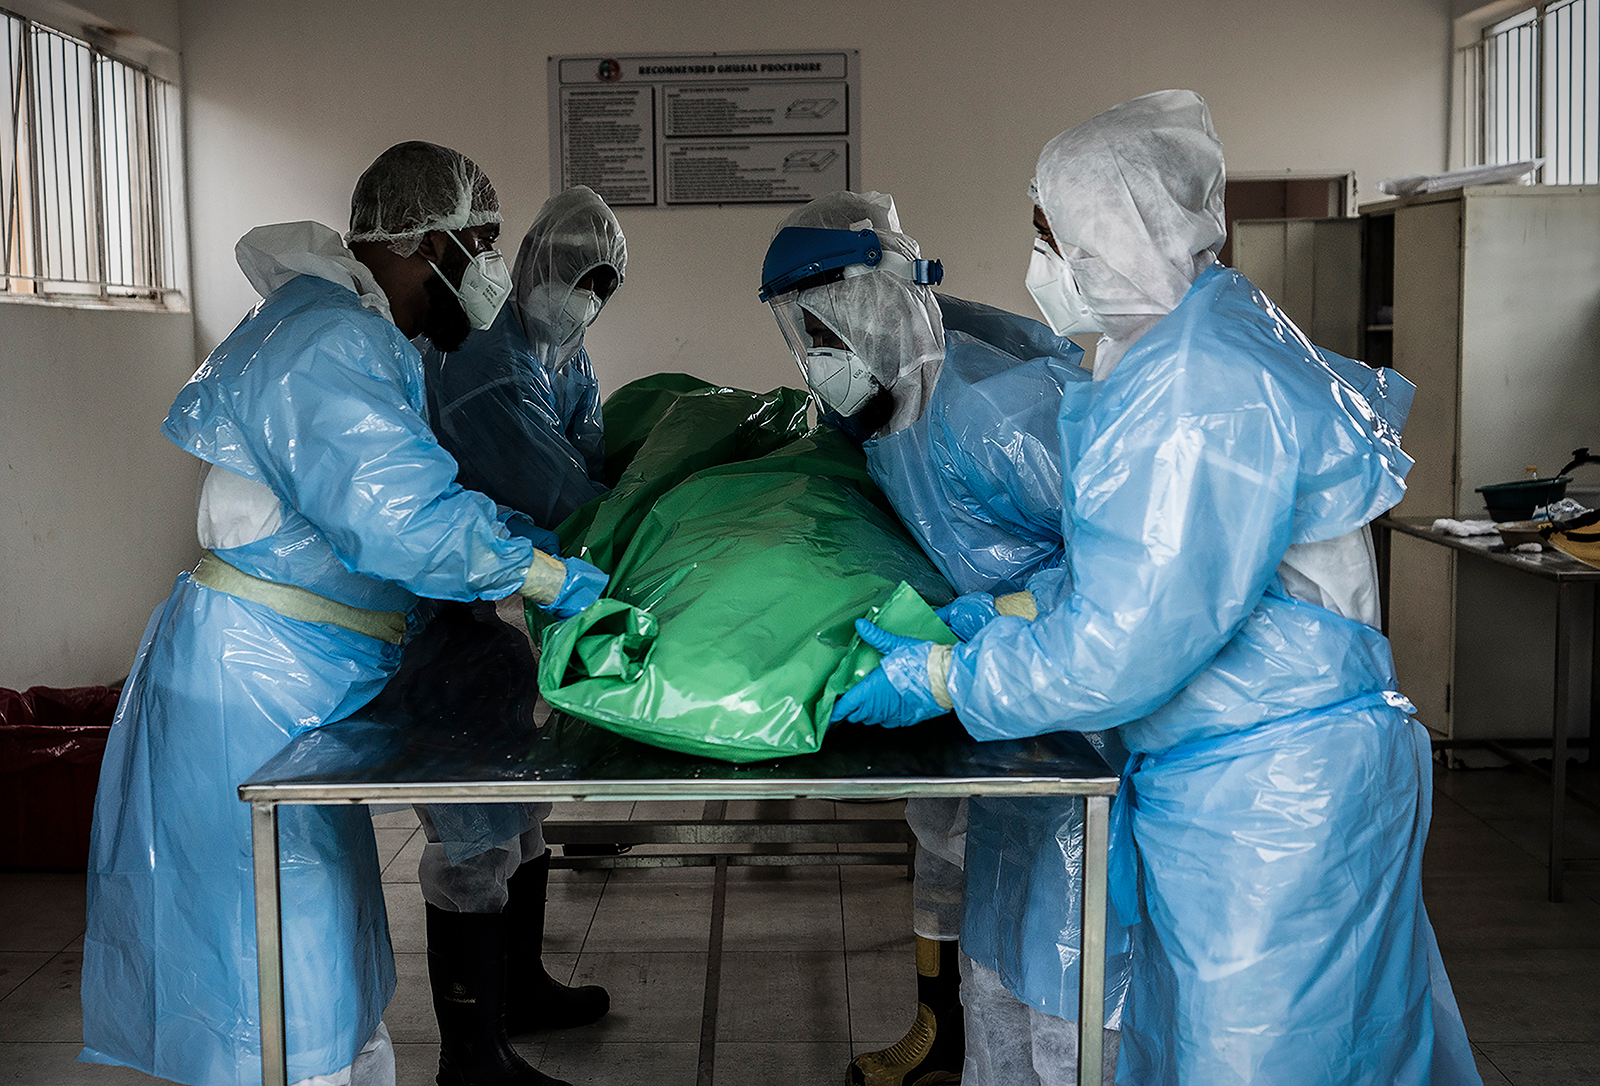 Members of the Saaberie Chishty Burial Society prepare the body of a person who died from Covid-19 in Johannesburg, South Africa, on December 26.